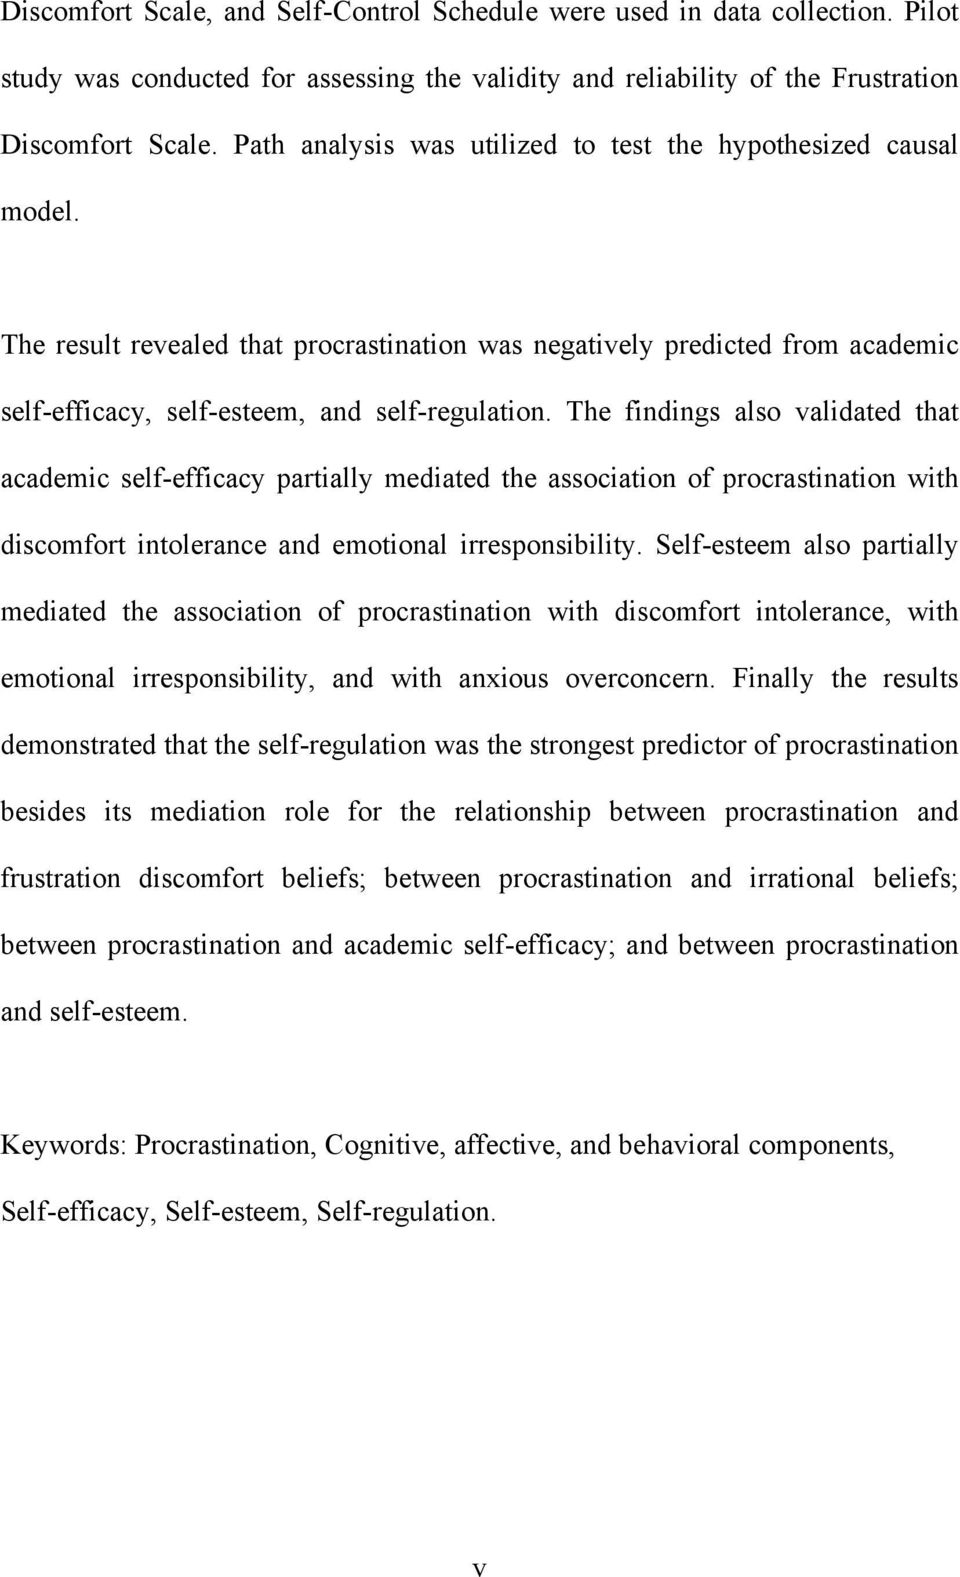 The findings also validated that academic self-efficacy partially mediated the association of procrastination with discomfort intolerance and emotional irresponsibility.